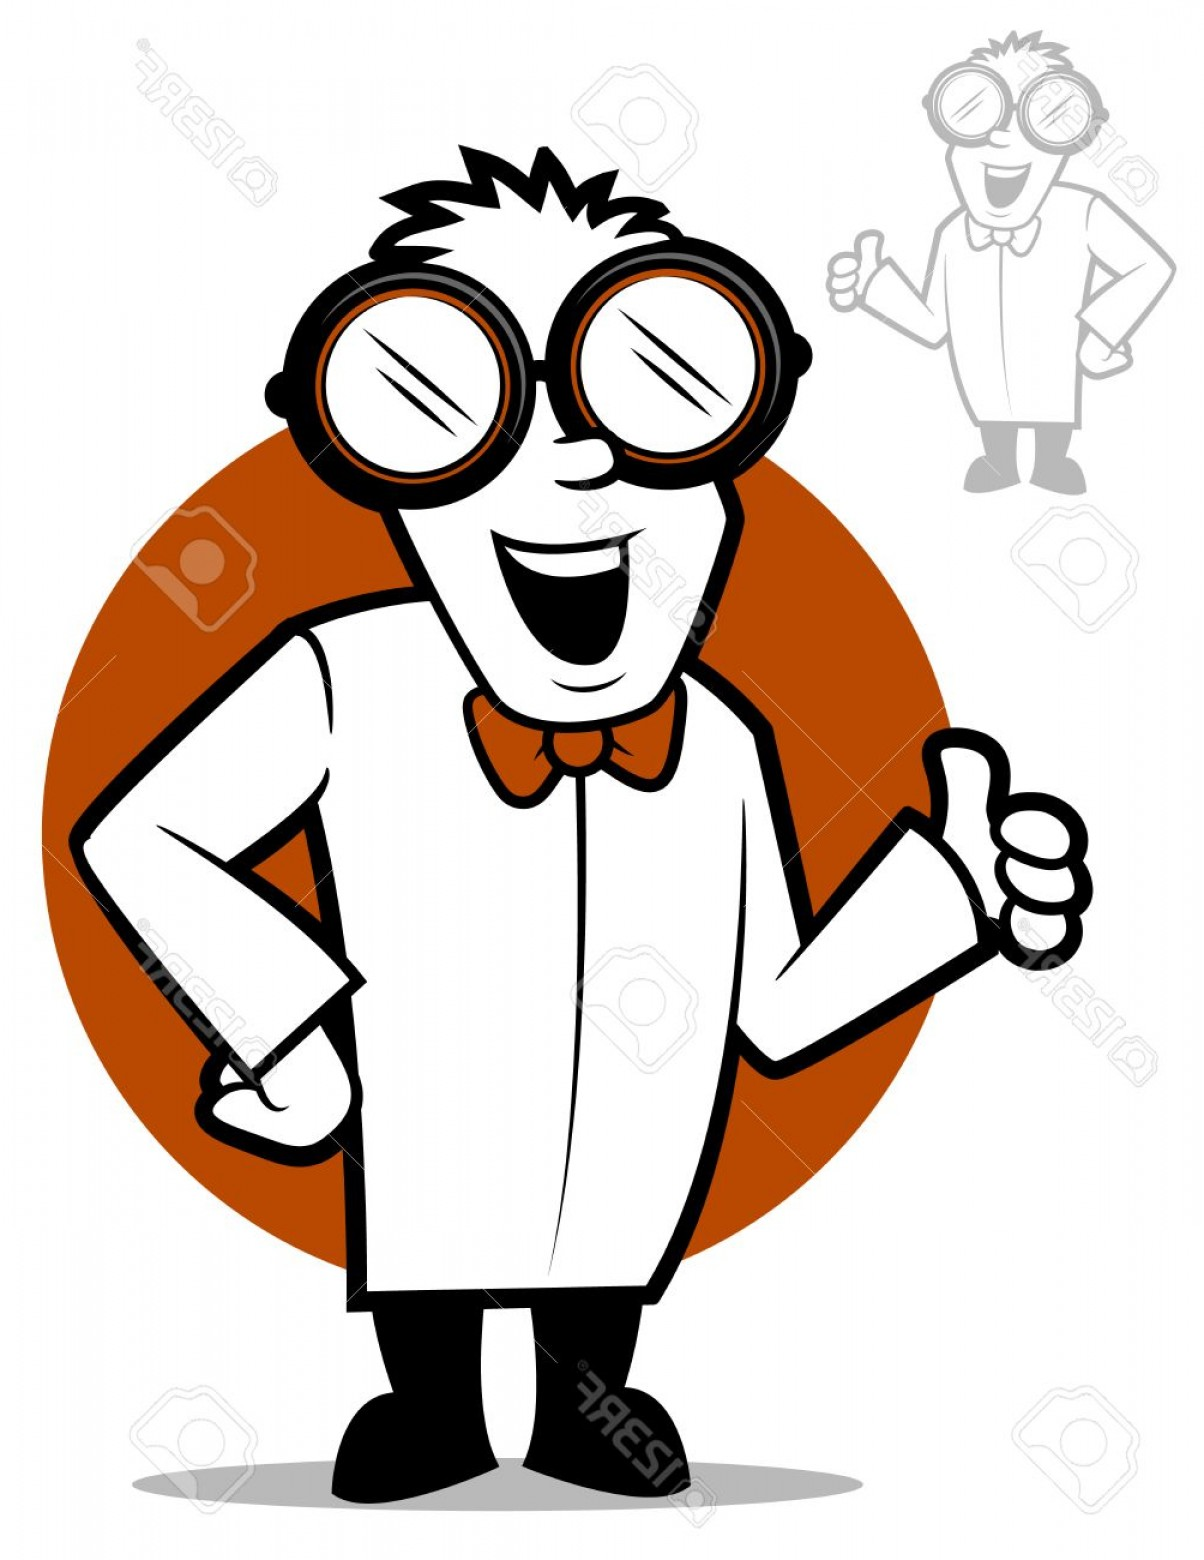 Lab Coat Cartoon Vector: Photostock Vector Cartoon Doctor Wearing Safety Goggles And A Lab Coat